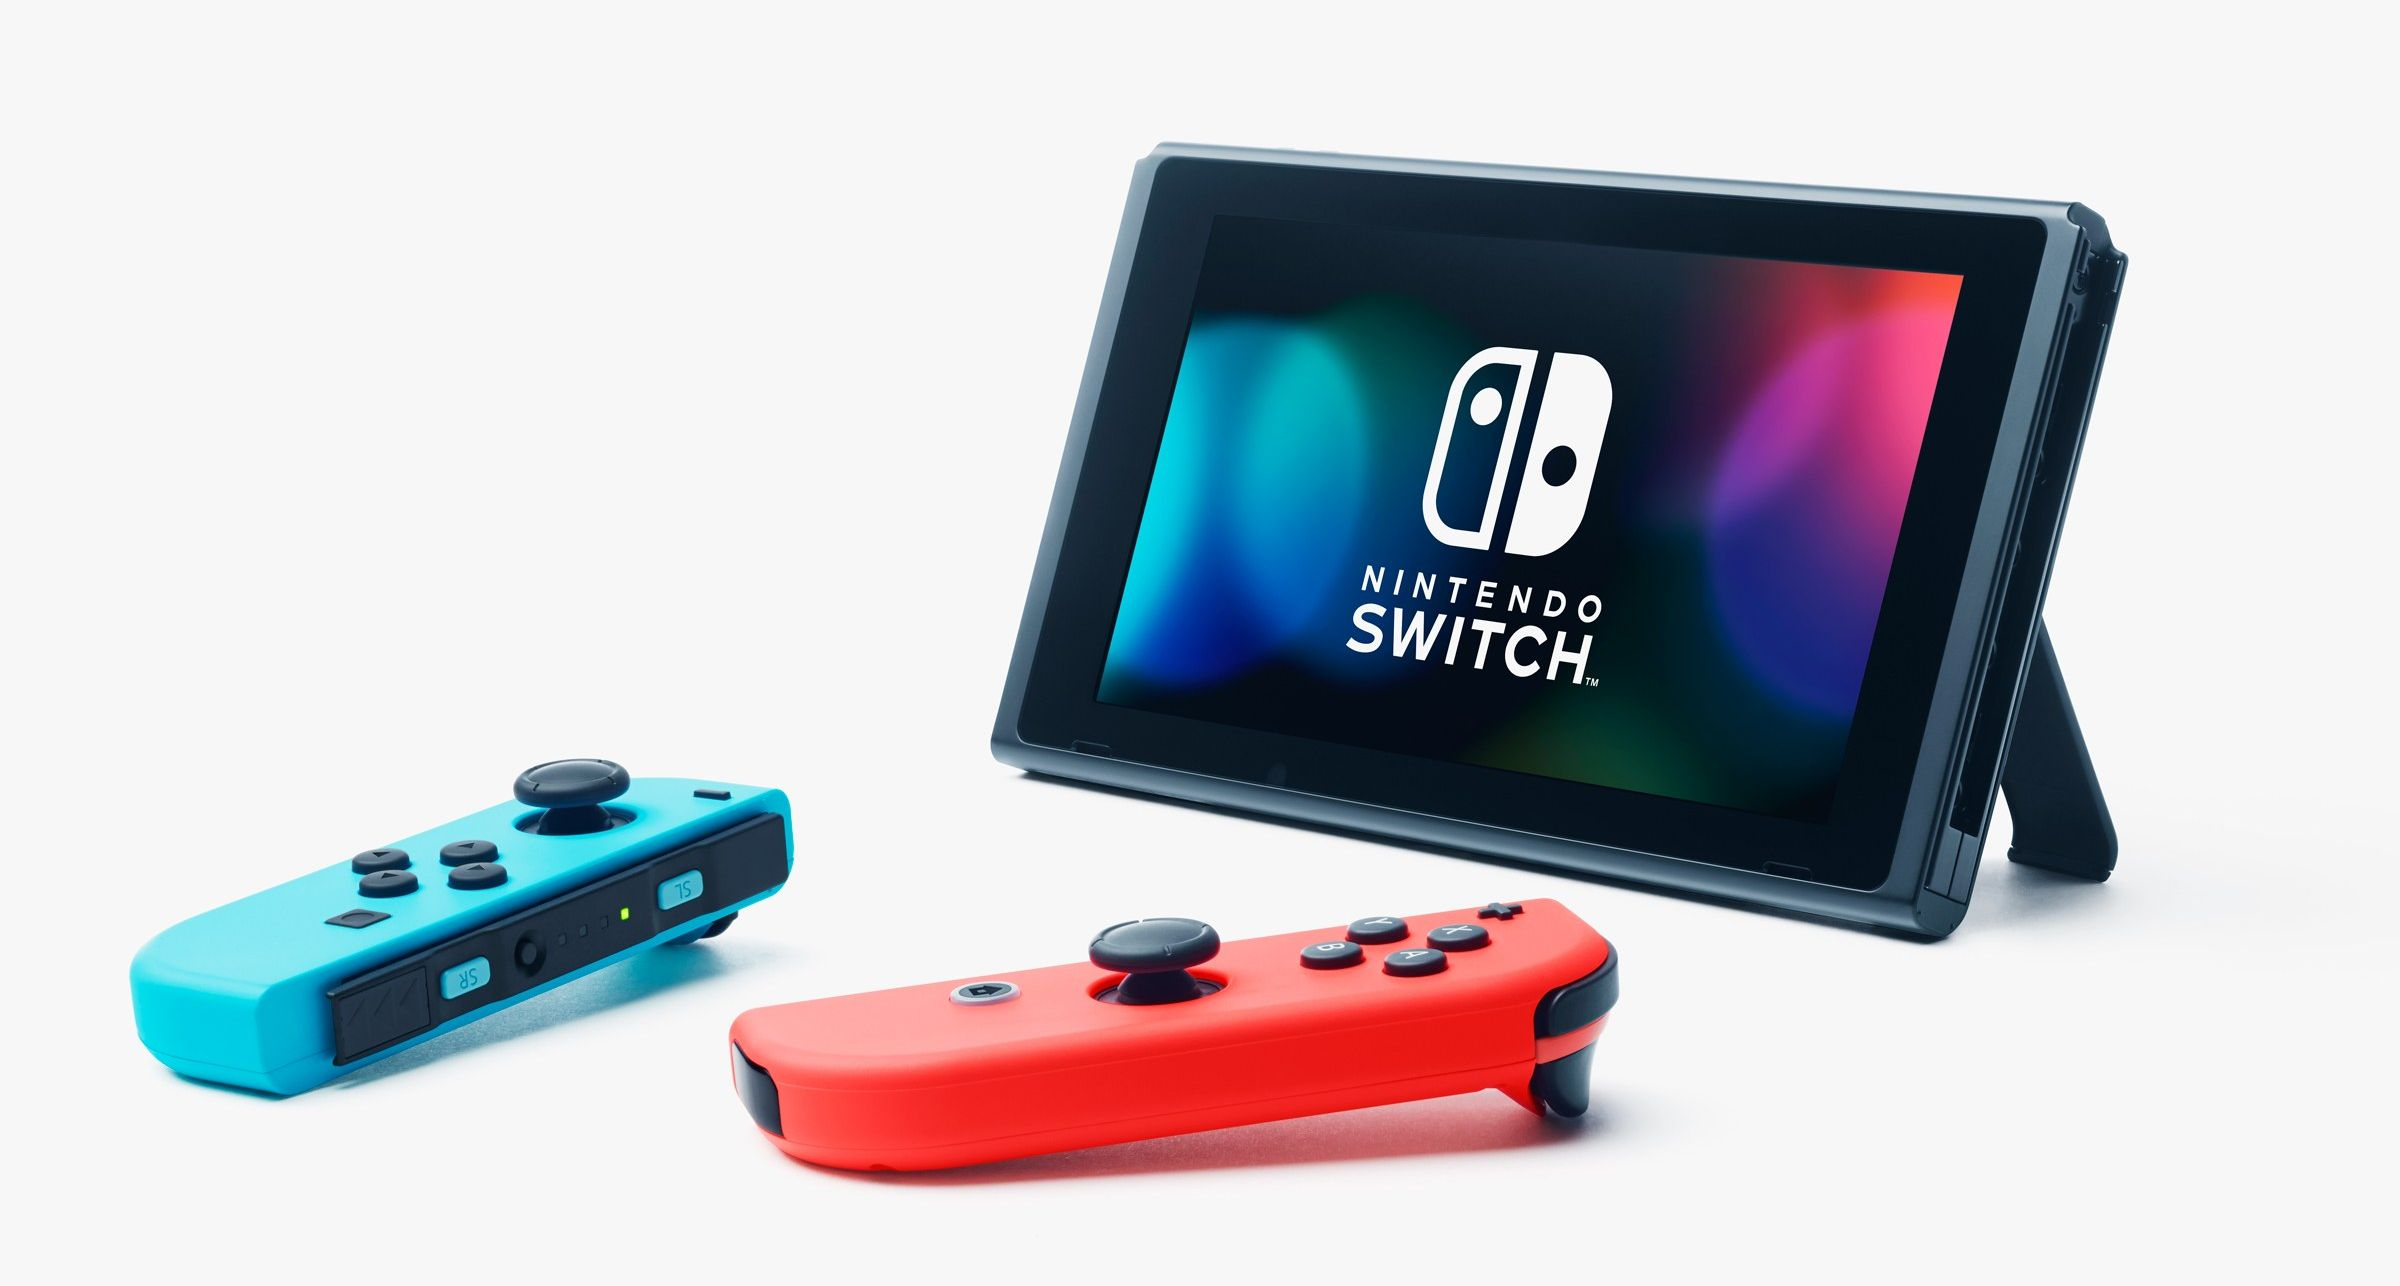 Unofficial Nintendo Switch OS update hacks console to enable use of